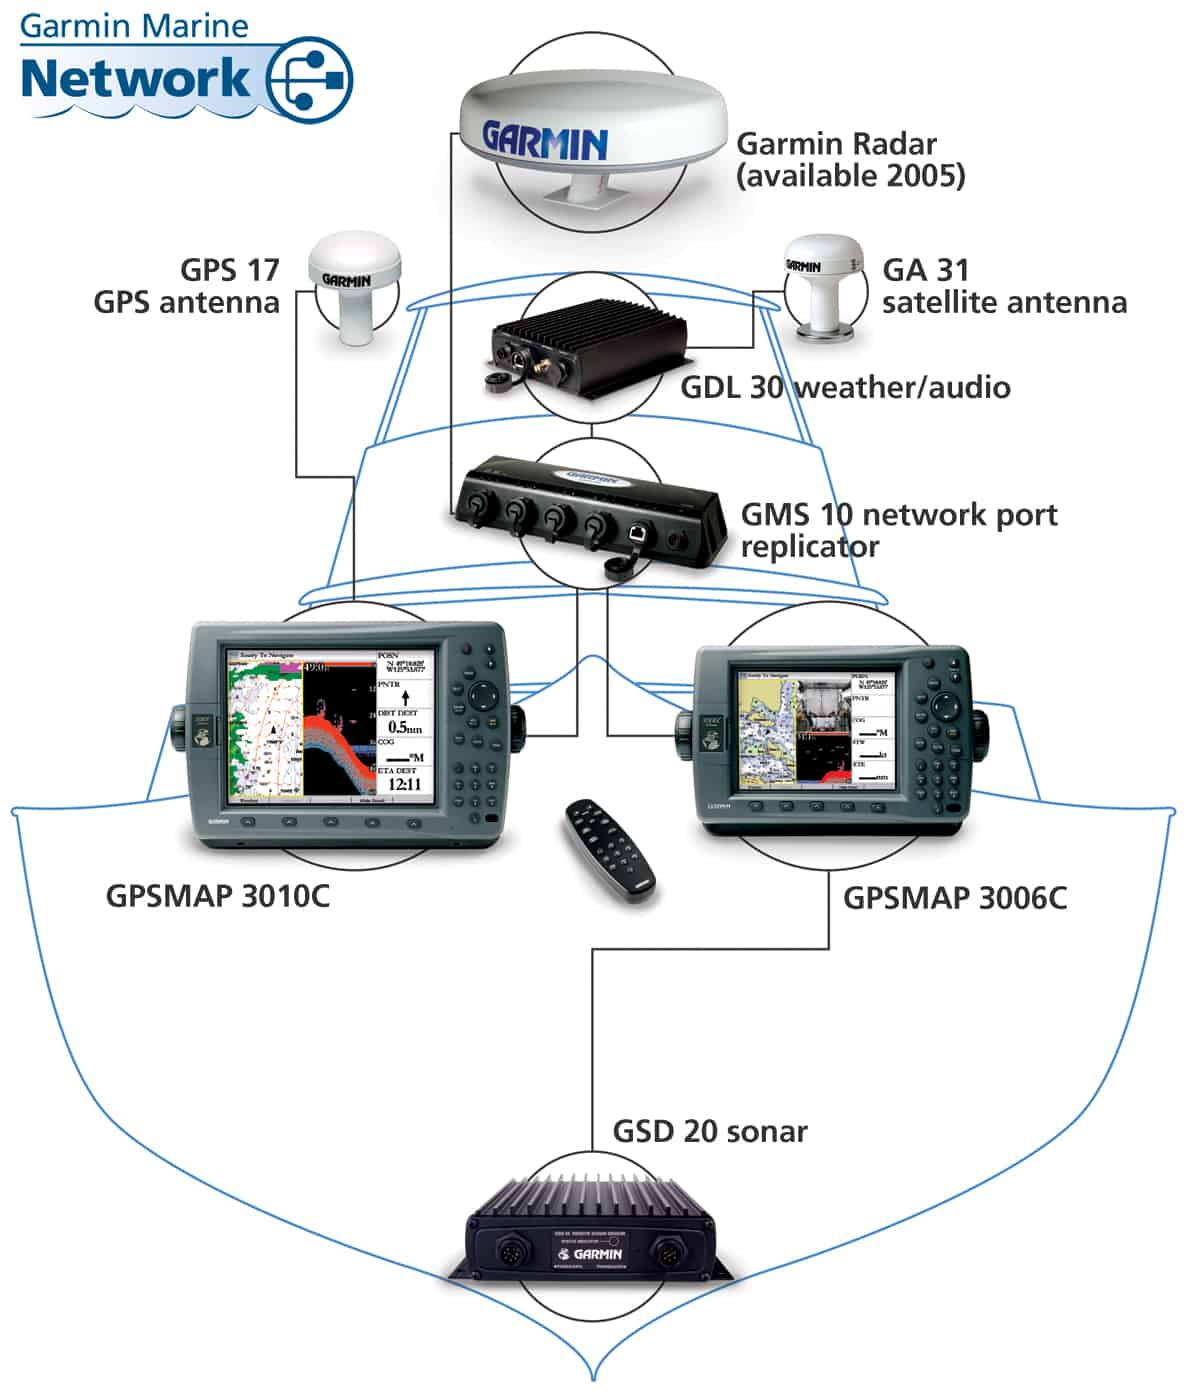 Garmin 3010c Wiring Diagram Libraries Gps 441s 2006c Librarygarmin Network Chartplotter